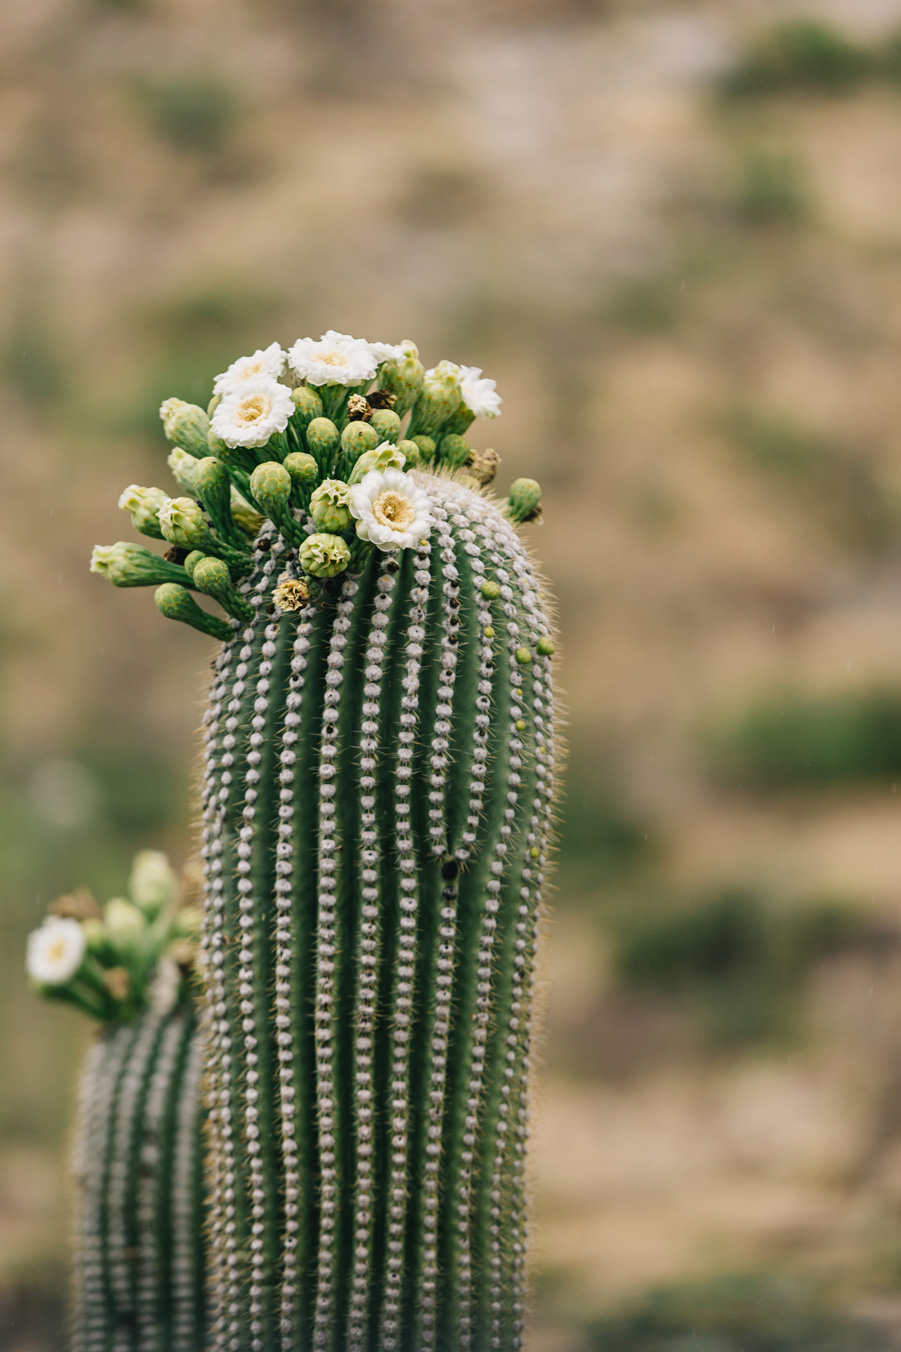 CindyGiovagnoli_Saguaro_National_Park_Arizona_desert_cactus_bloom_flowers-014.jpg